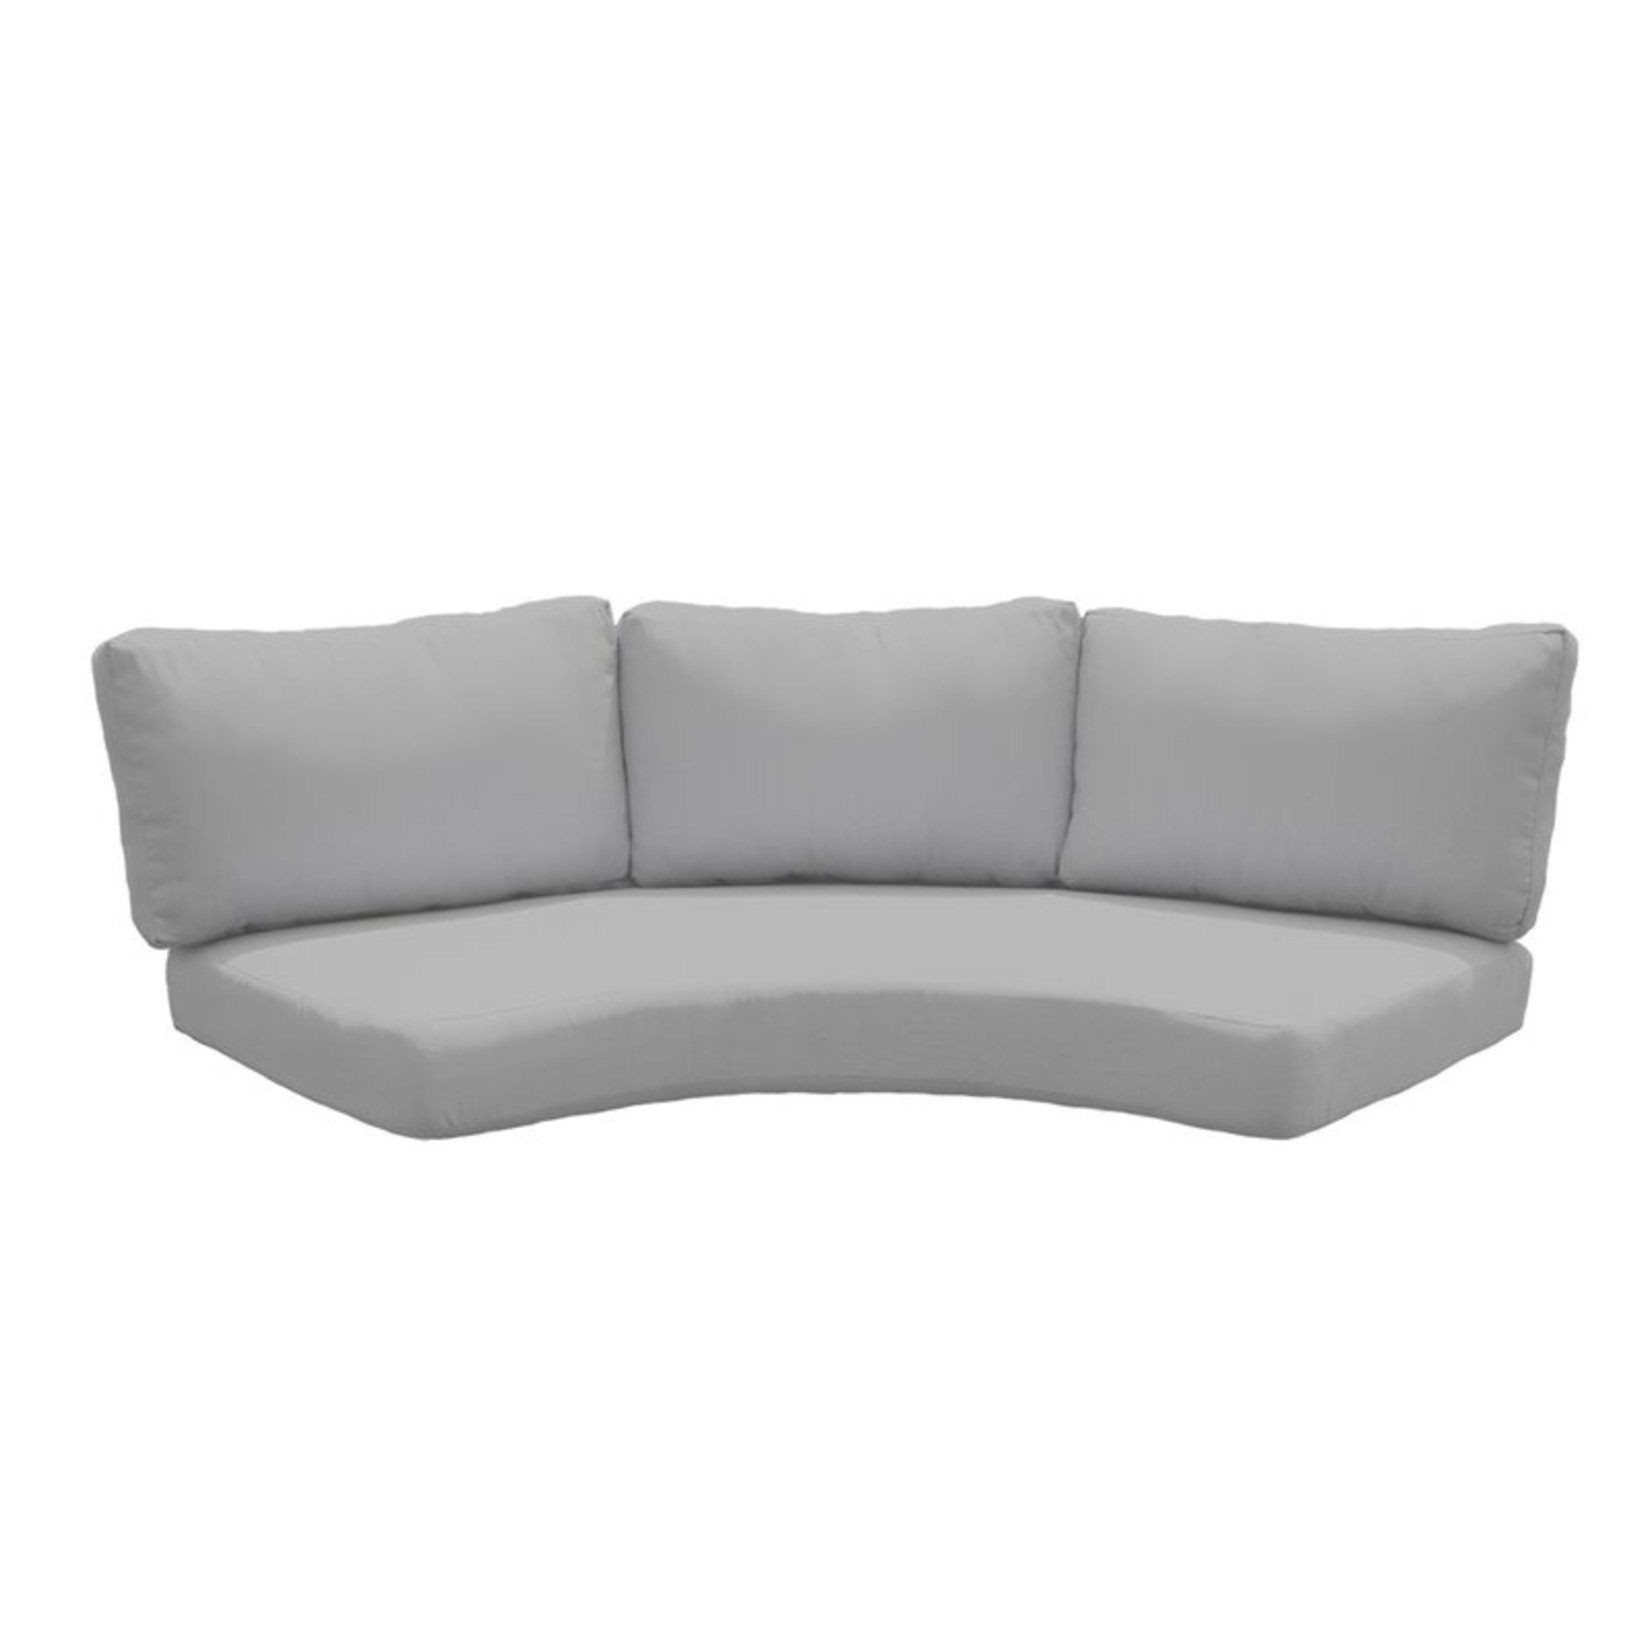 *Tegan Indoor/Outdoor Cushion Covers (Covers Only) - Set of 4 - Gray -Final Sale